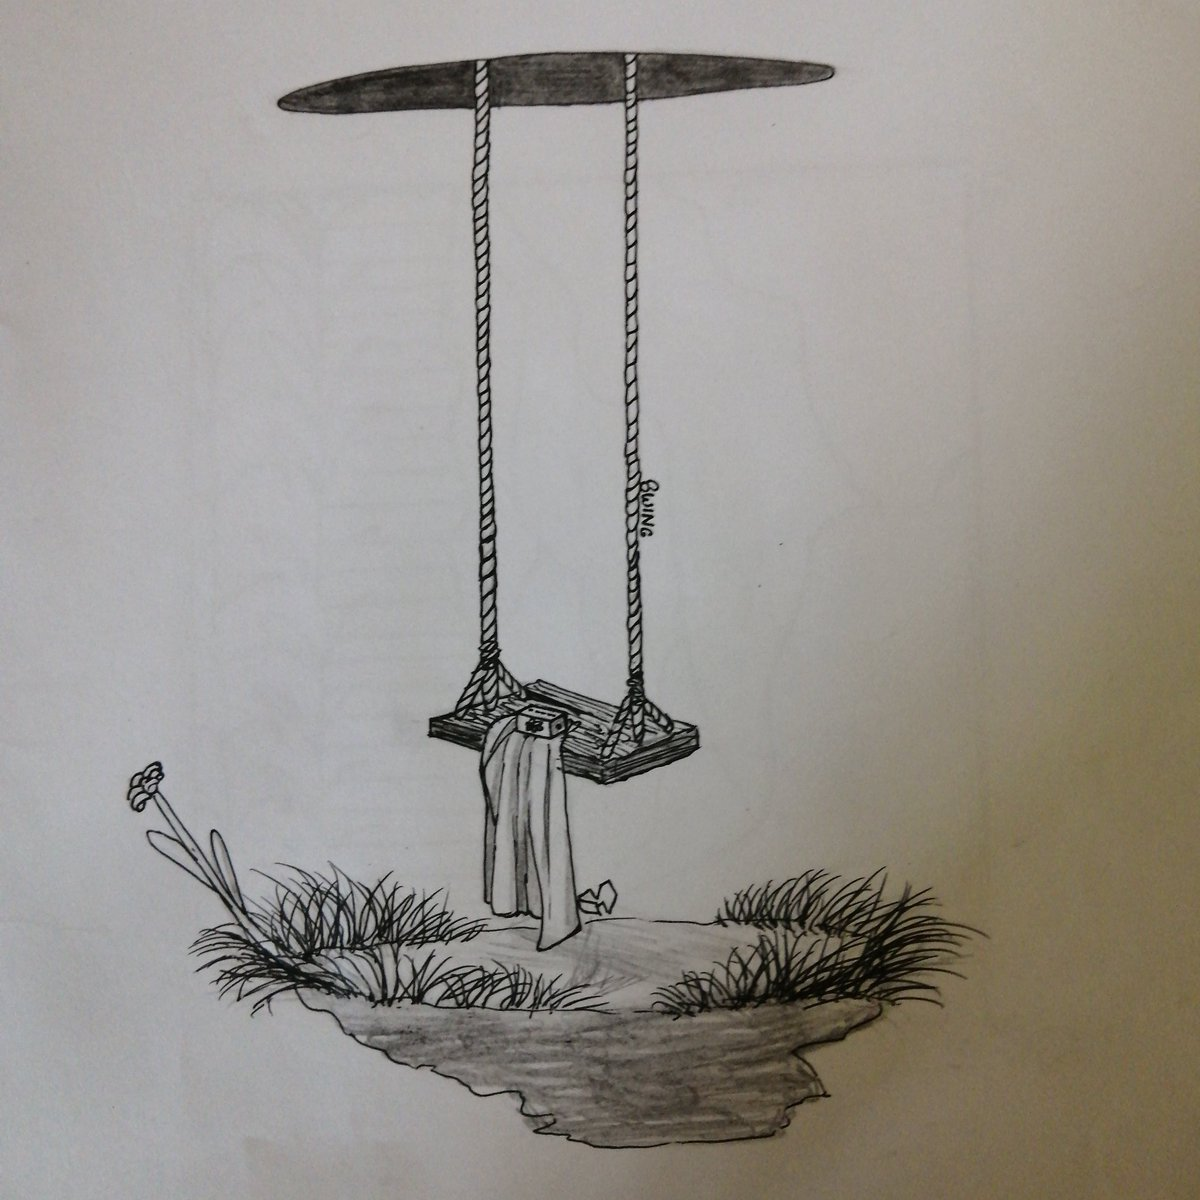 I did this one for the last inktober.  #inktober #swing #draw #drawing #blackandwhite #traditionalart #art #artist #island #simple #inkpic.twitter.com/bfppcE0Yzj